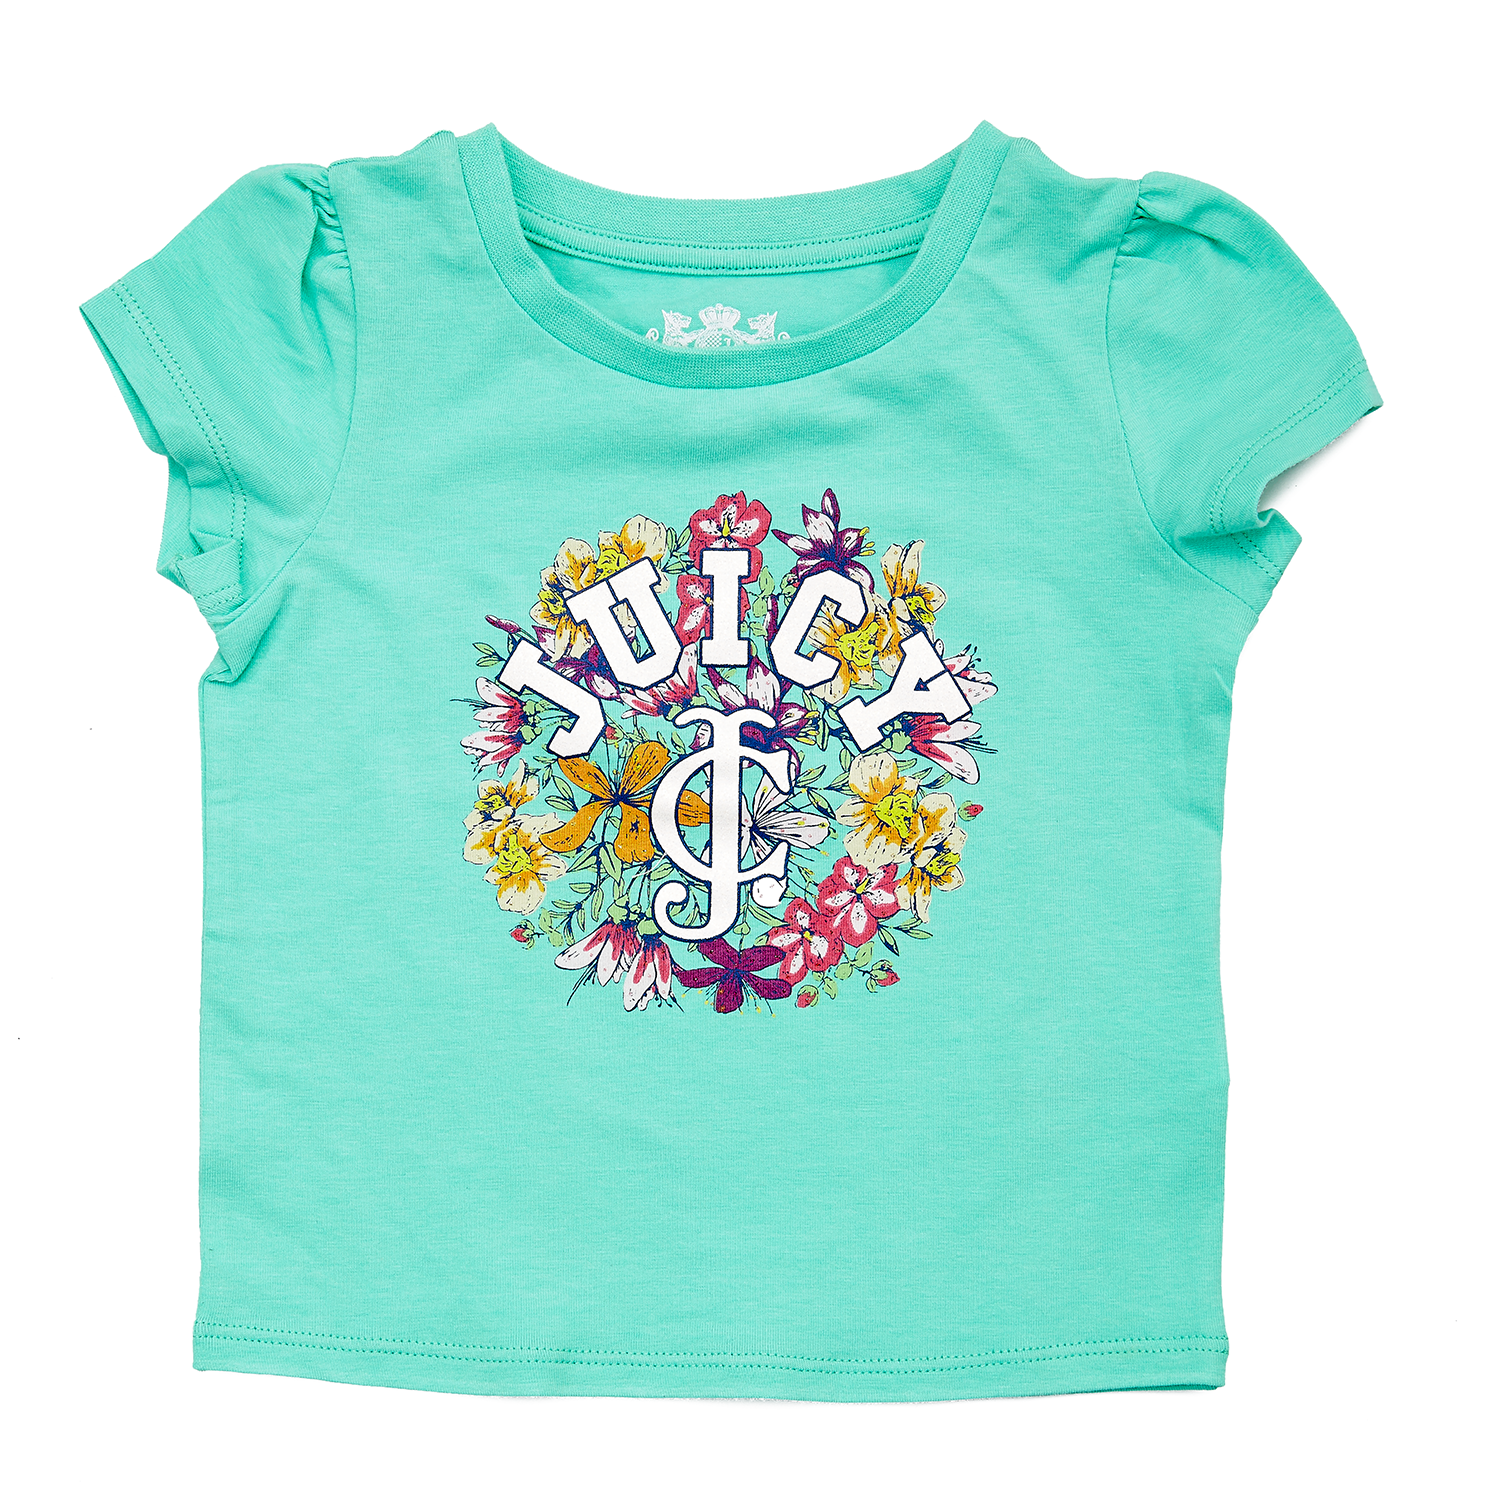 JUICY COUTURE KIDS - Βρεφική μπλούζα JUICY COUTURE πράσινη